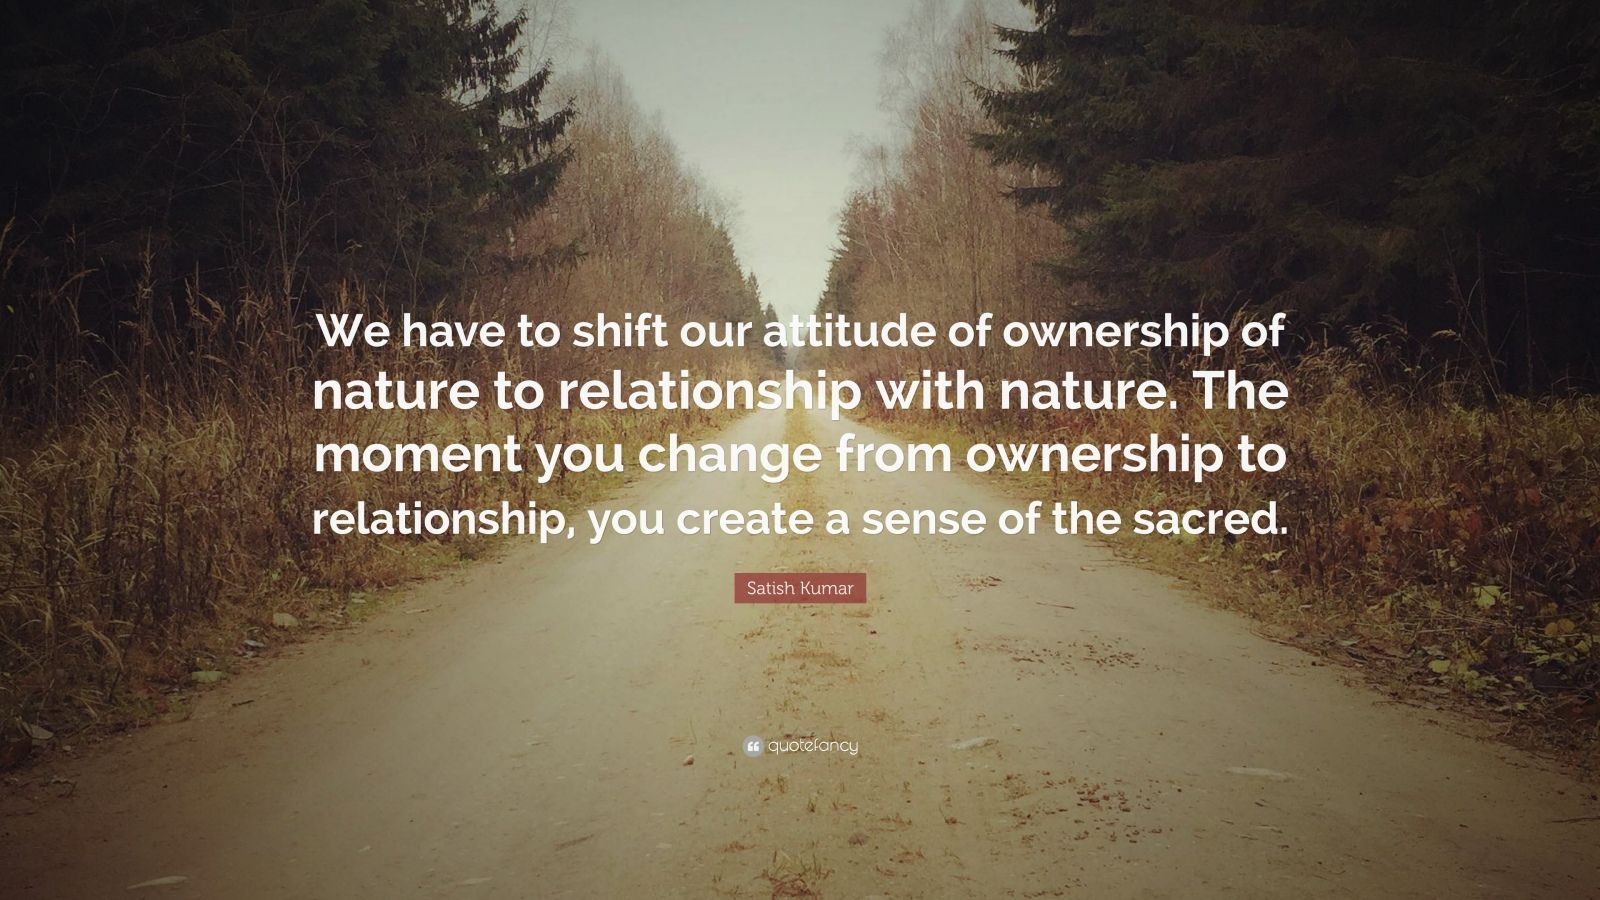 """Satish Kumar Quote: """"We have to shift our attitude of ownership of nature to relationship with nature. The moment you change from ownership to relationship, you create a sense of the sacred."""""""